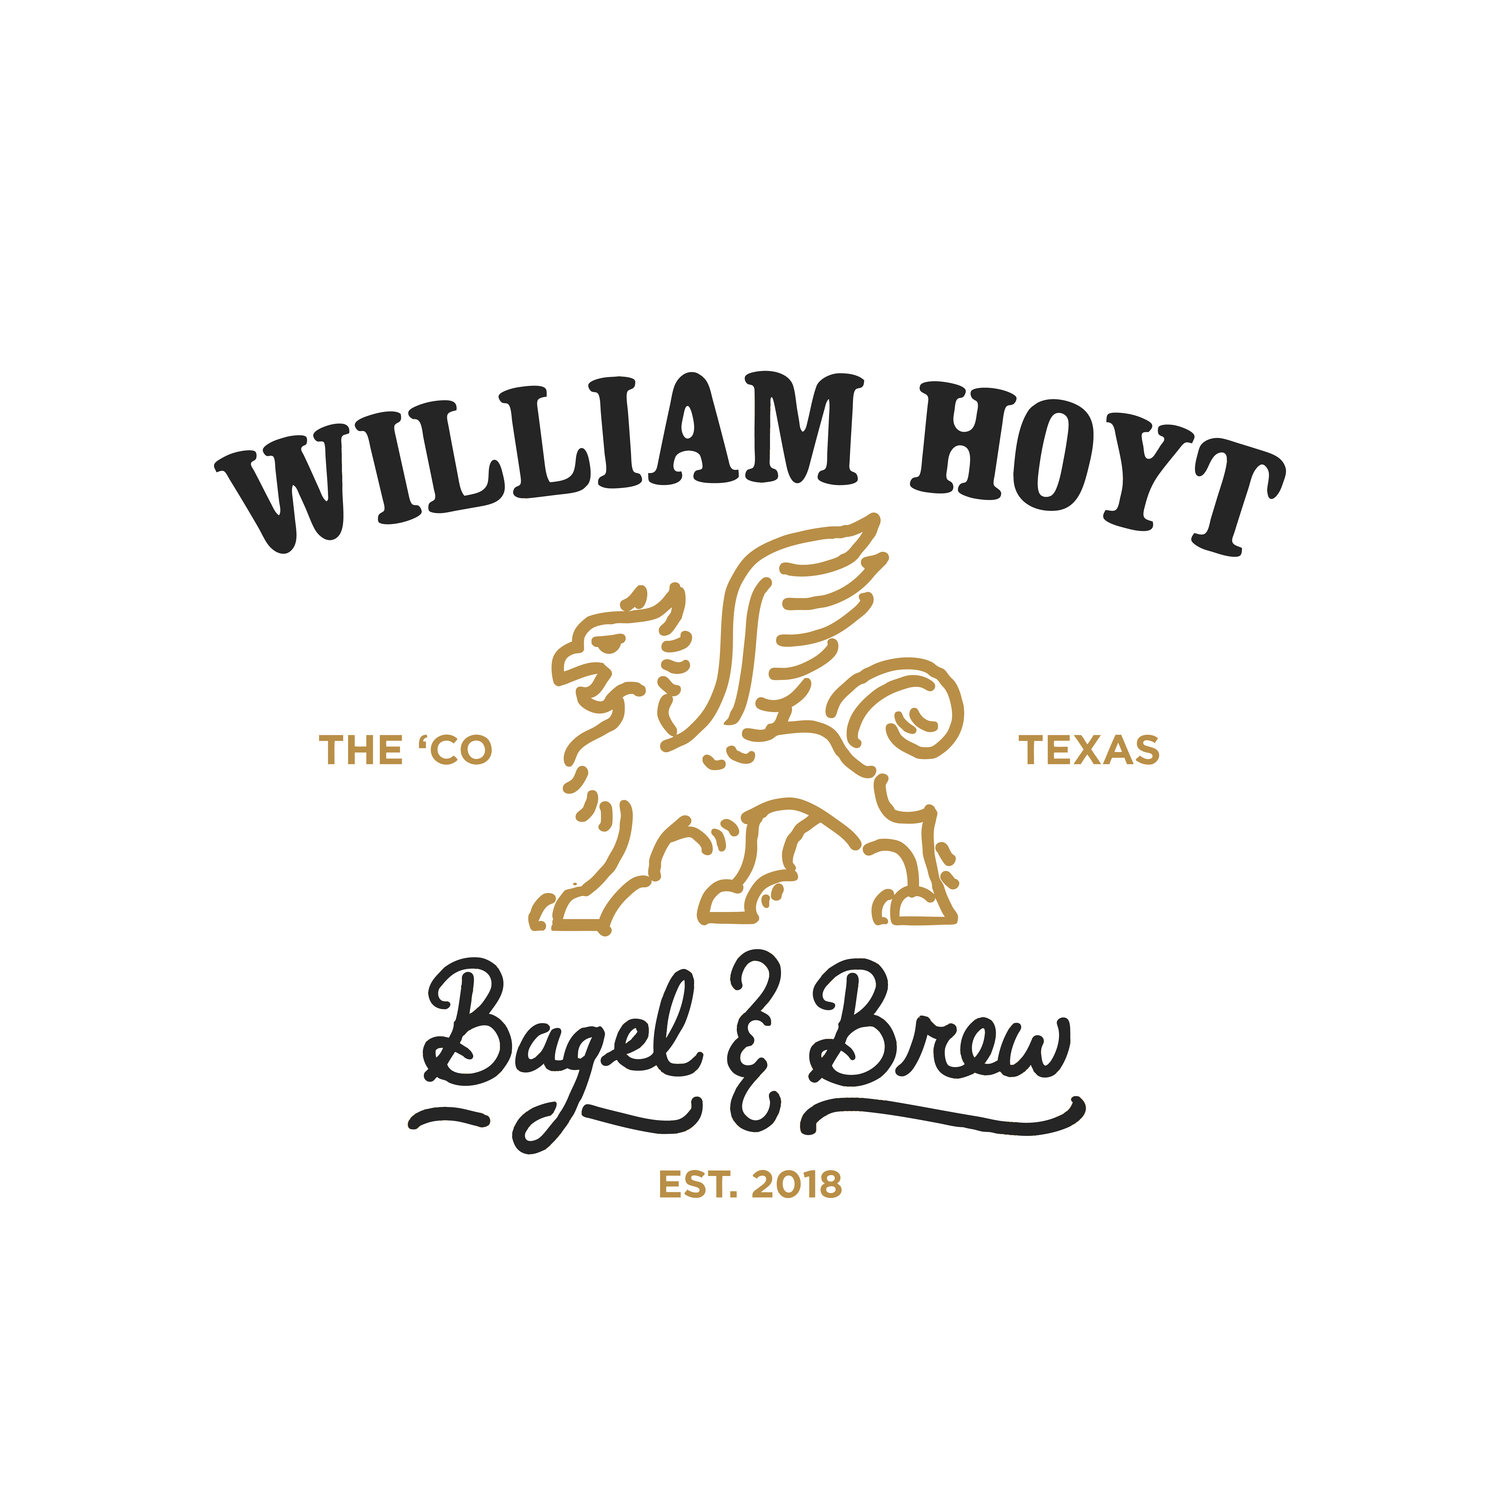 William Hoyt Bagel & Brew